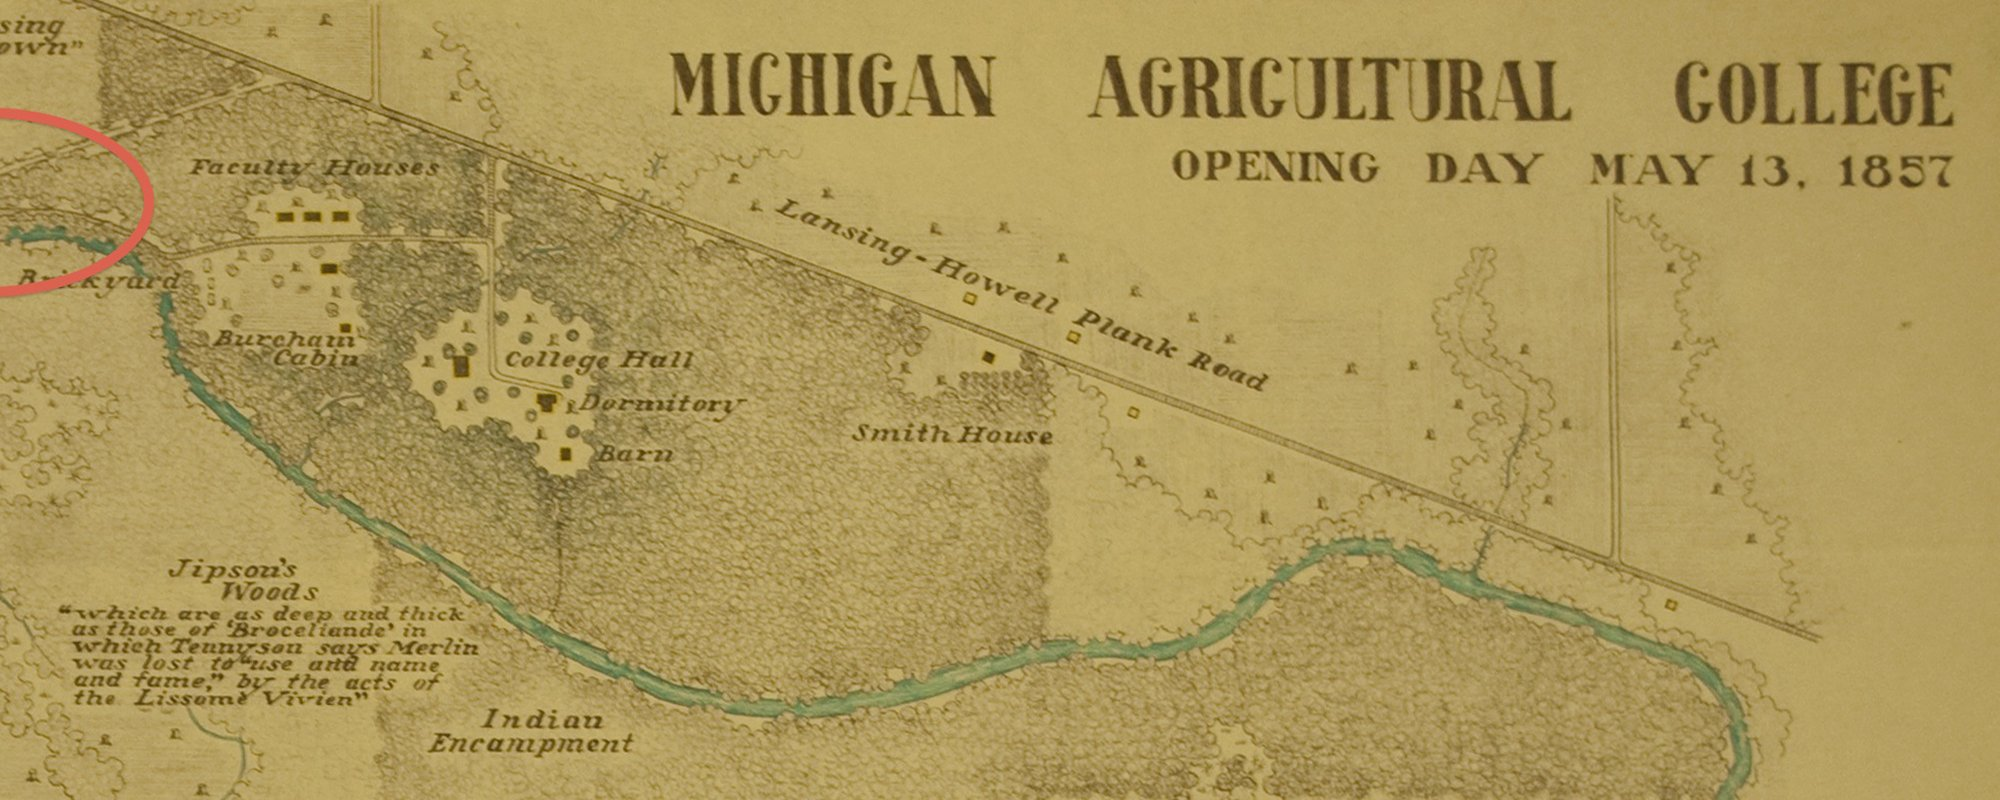 1857: MAC Opening Day Map Shows Indian Encampment